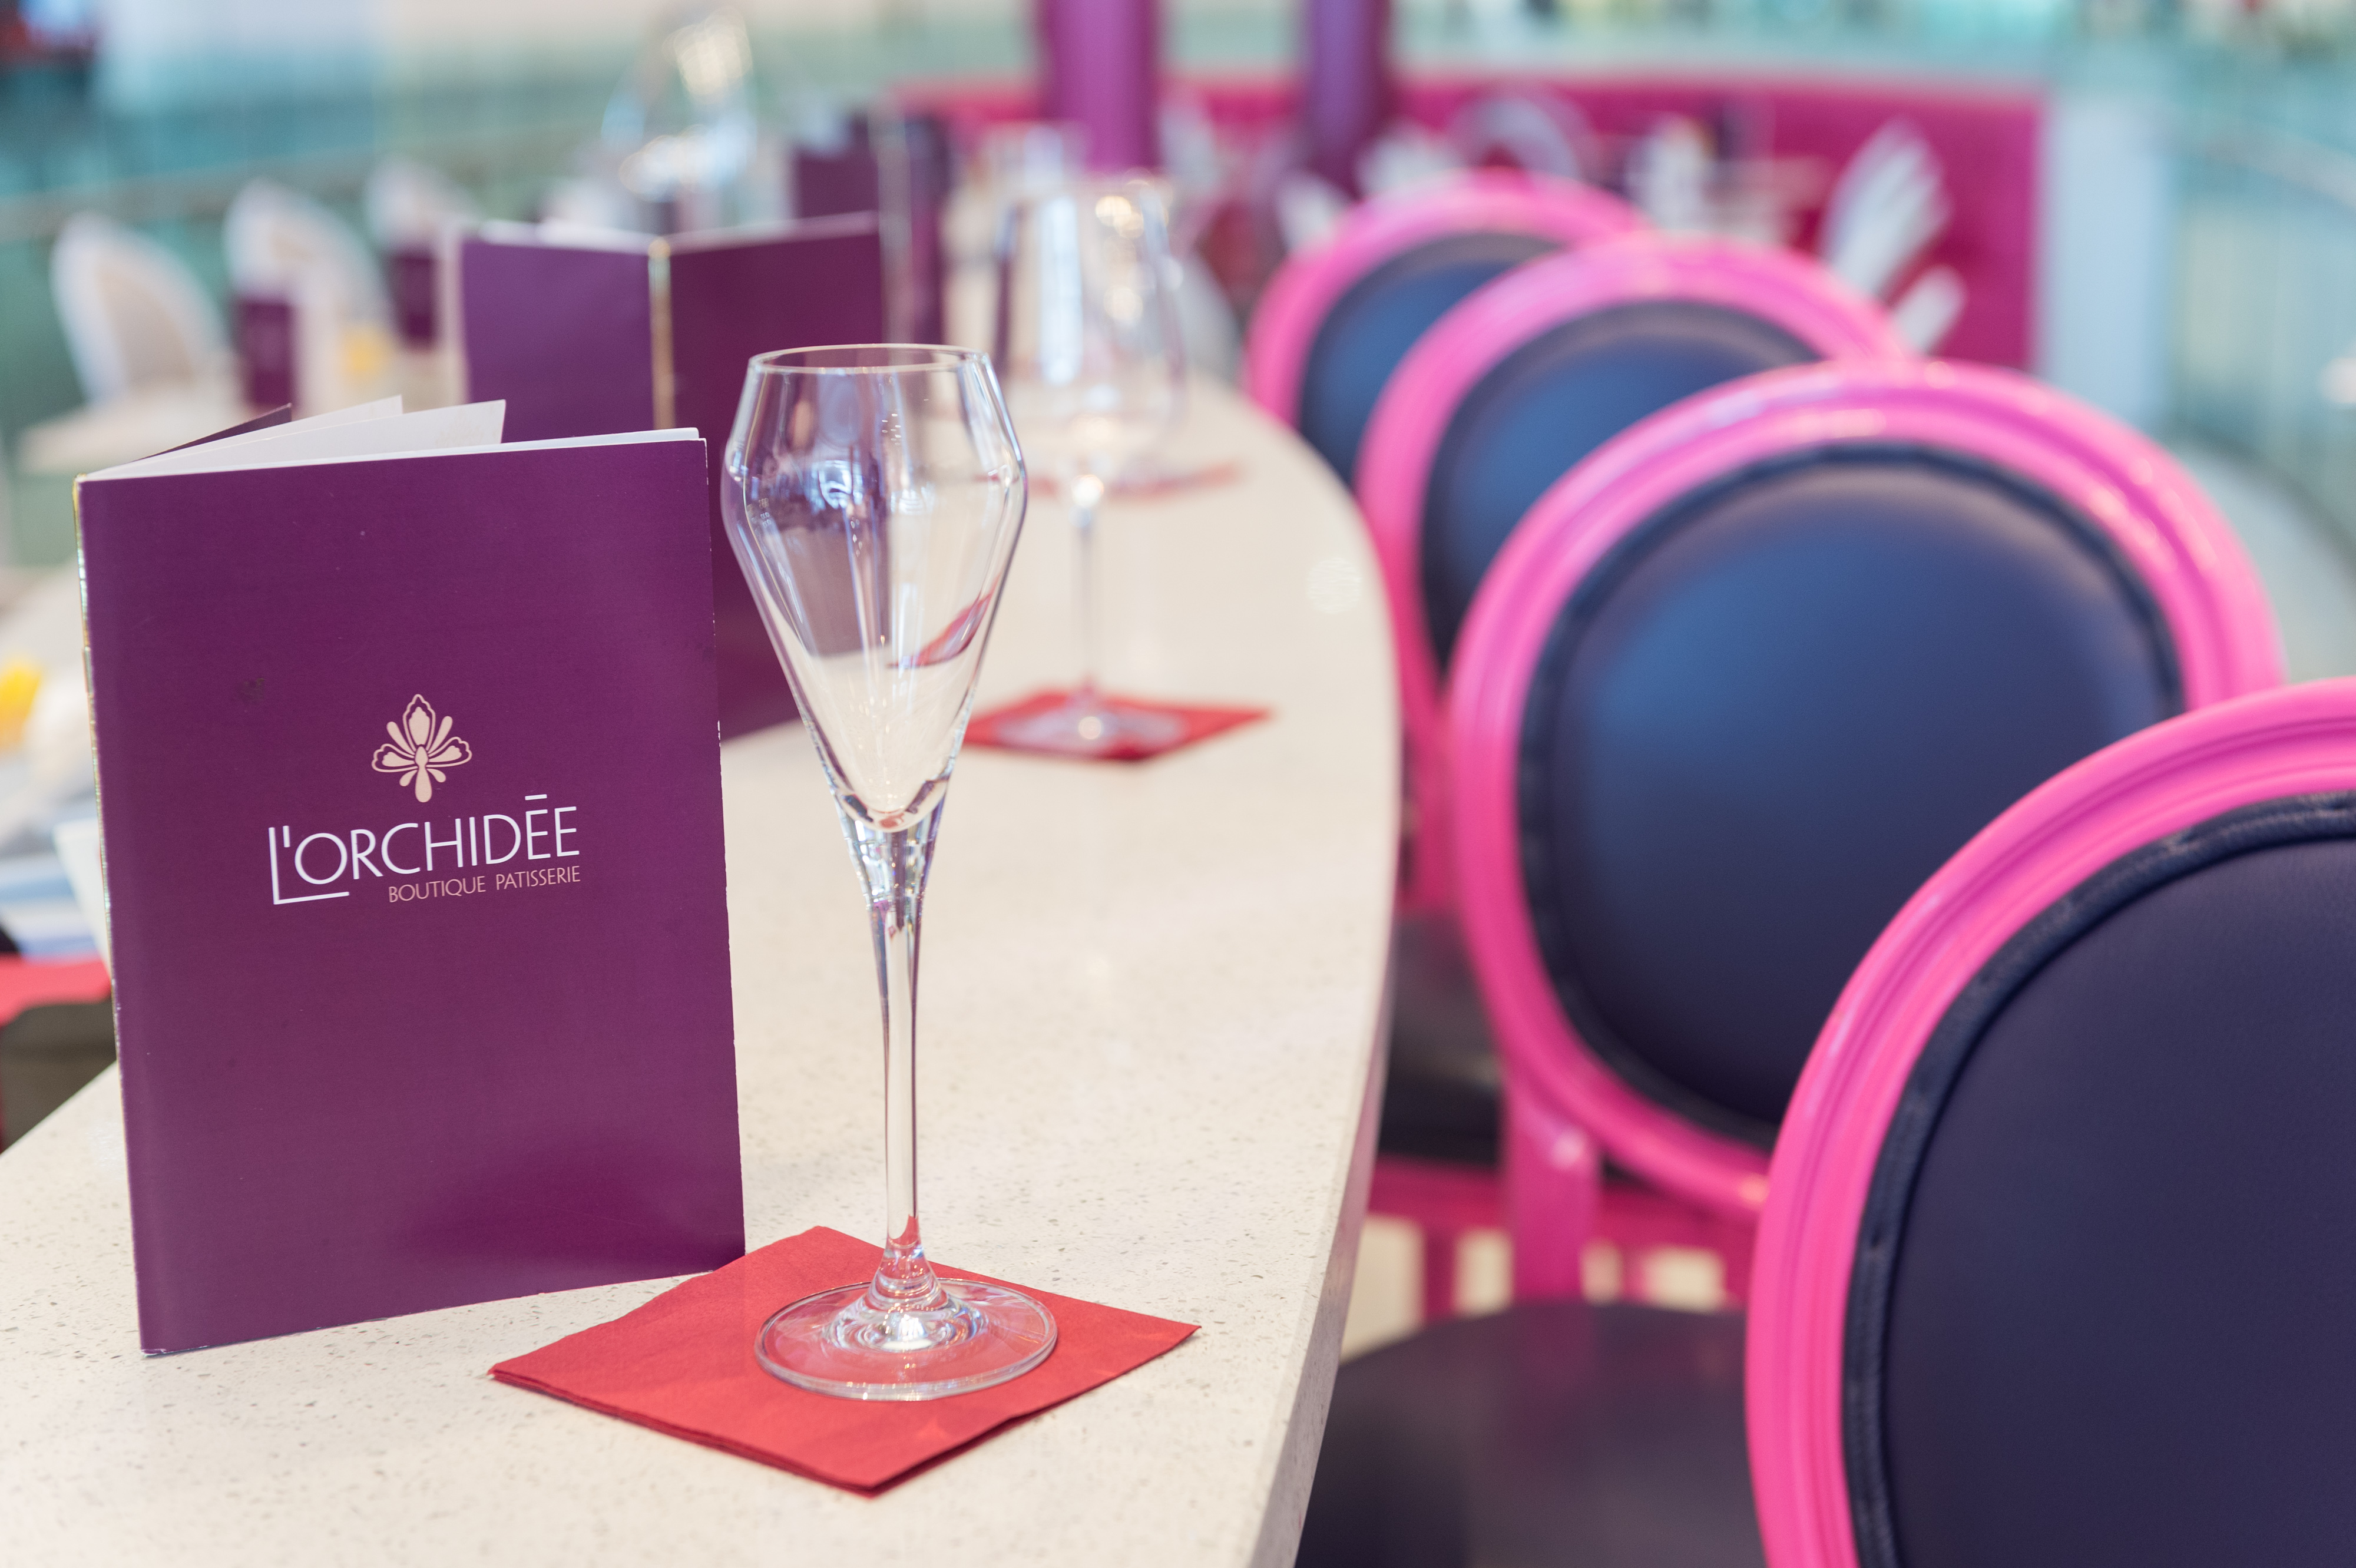 Image of L'orchidee - Westfield London